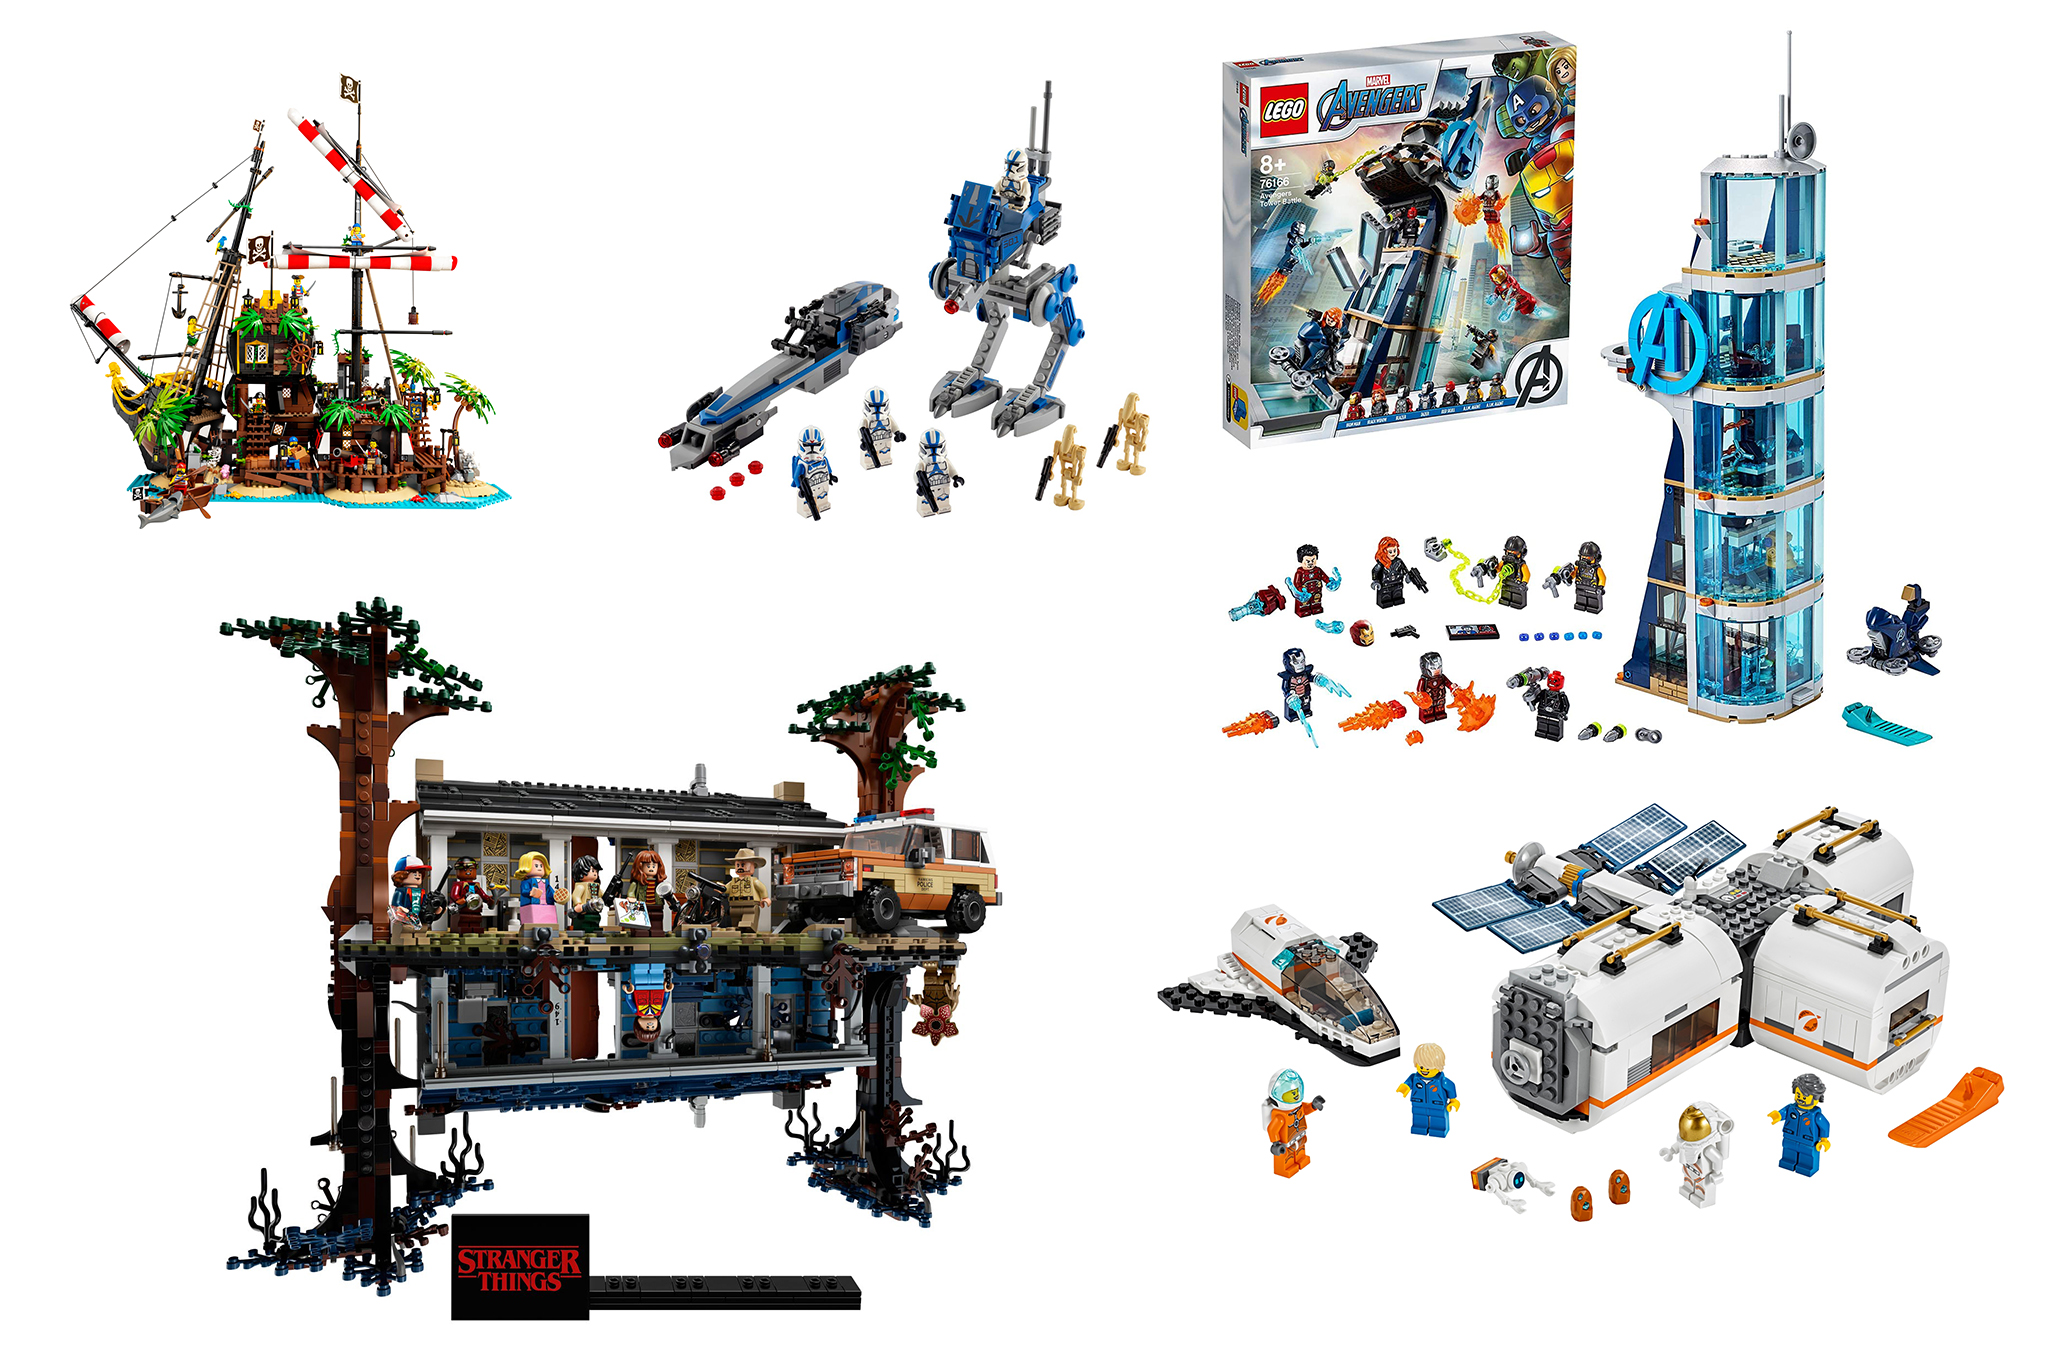 LEGO Christmas Gift Guide - All sets footer image